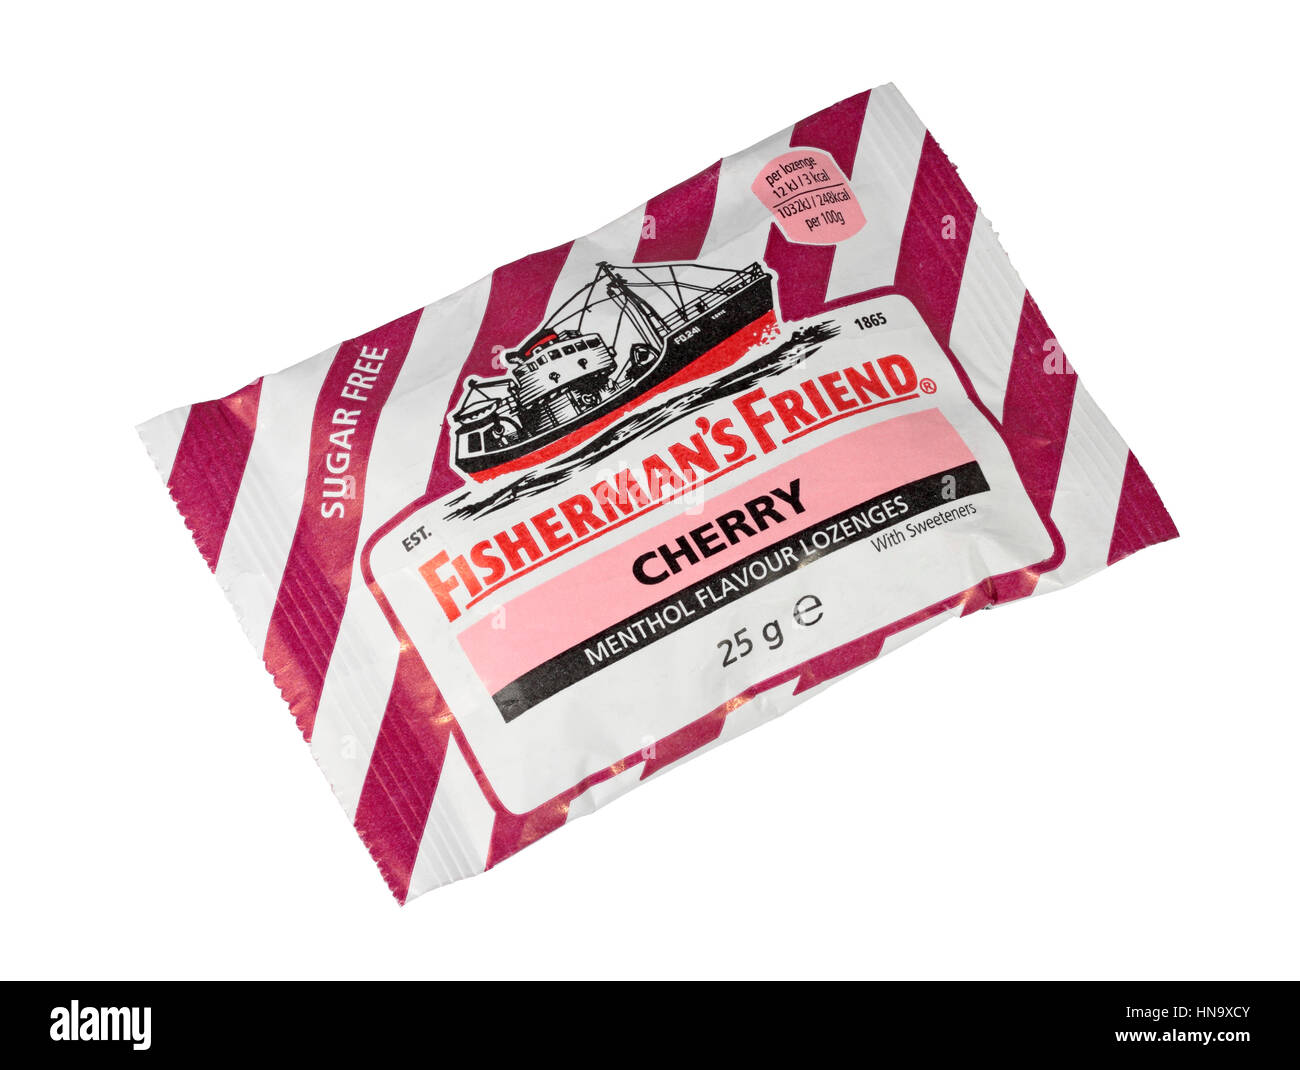 A 25g Packet of Cherry Flavoured Sugar Free Fisherman's Friends Isolated on a white background - Stock Image